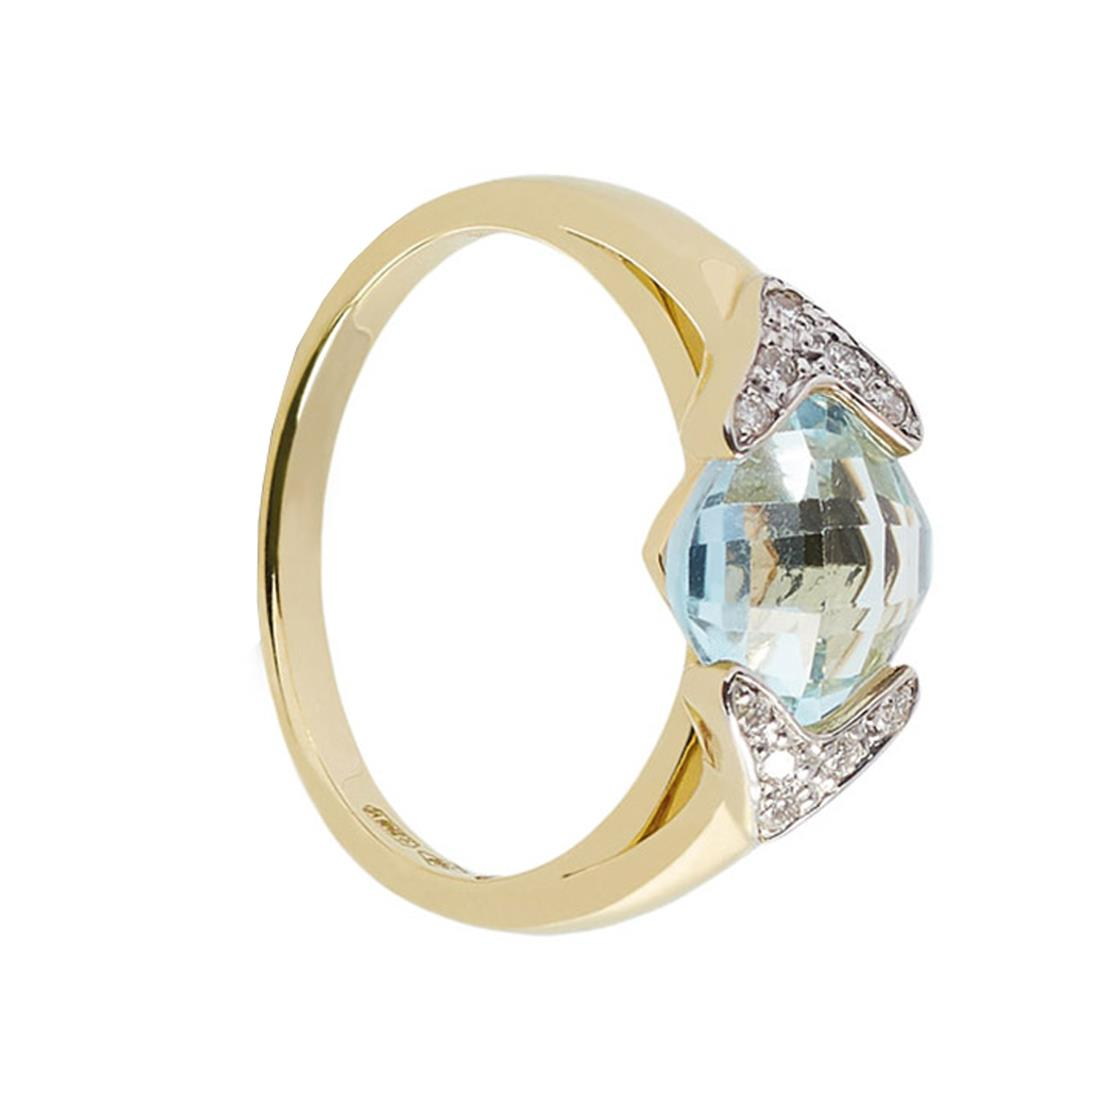 Anillo en oro amarillo con topacio sky corte cuadrado briolette ct 3,00 y diamantes ct 0,09.  Disponible en oro blanco.